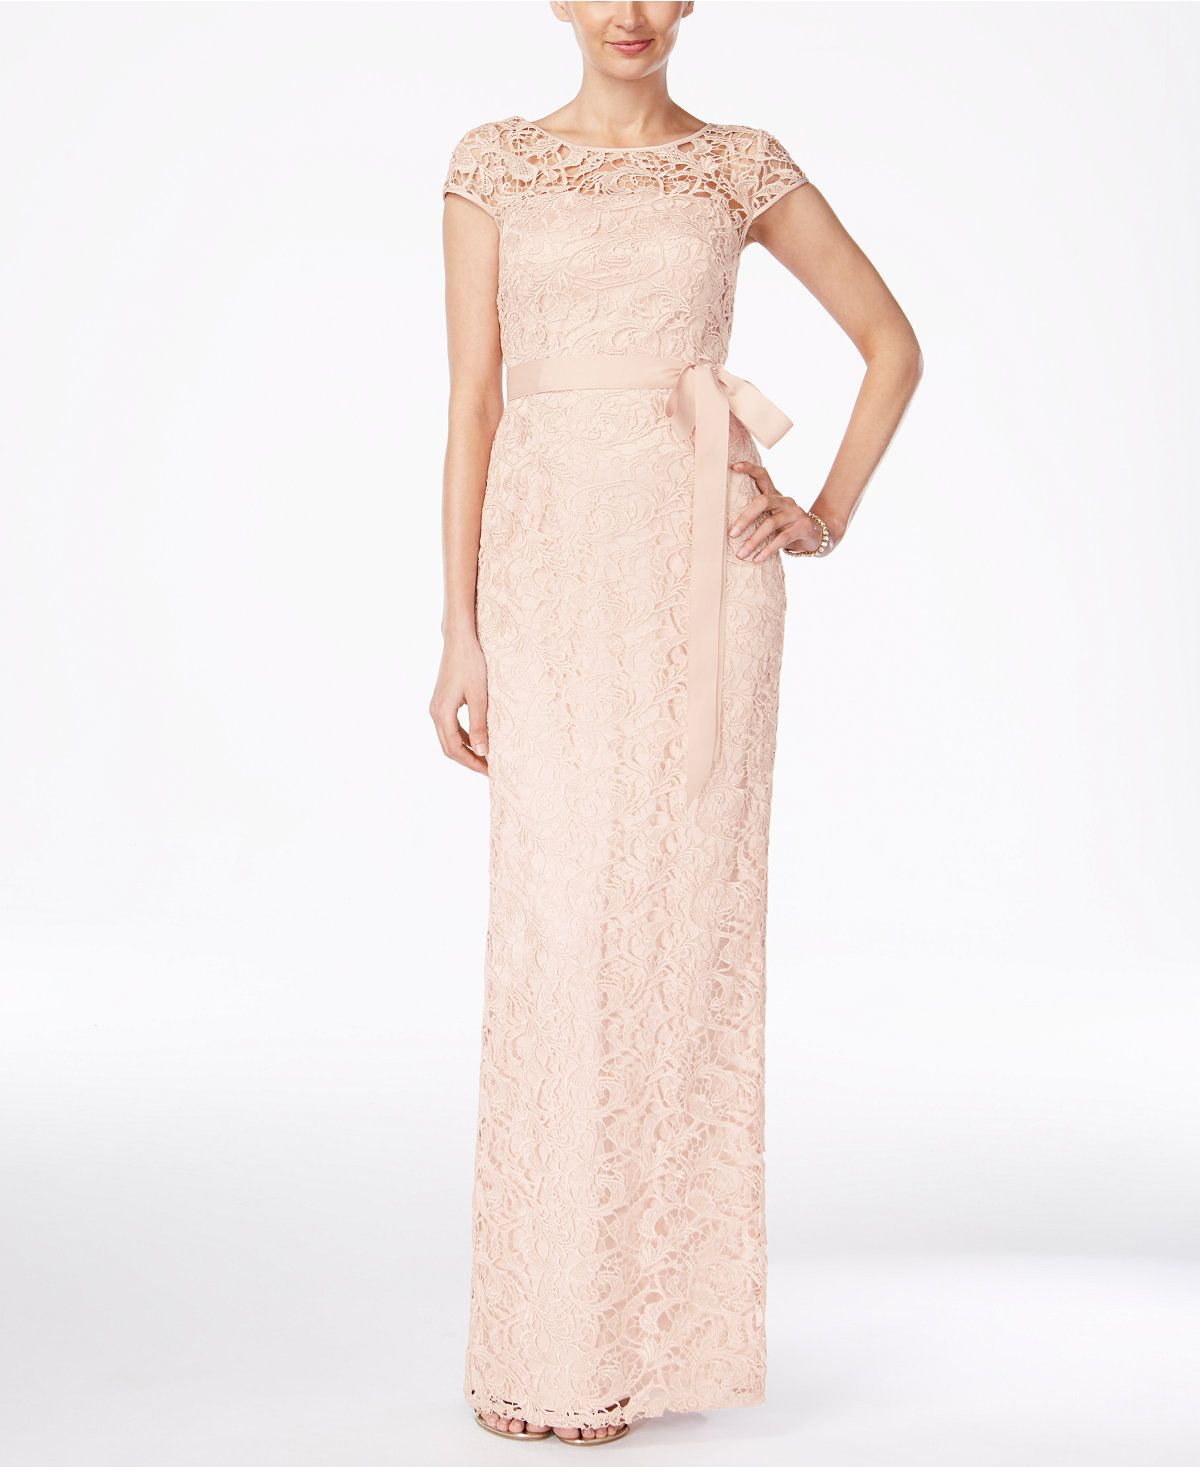 Adrianna Papell Cap-Sleeve Illusion Lace Gown | Adrianna papell ...